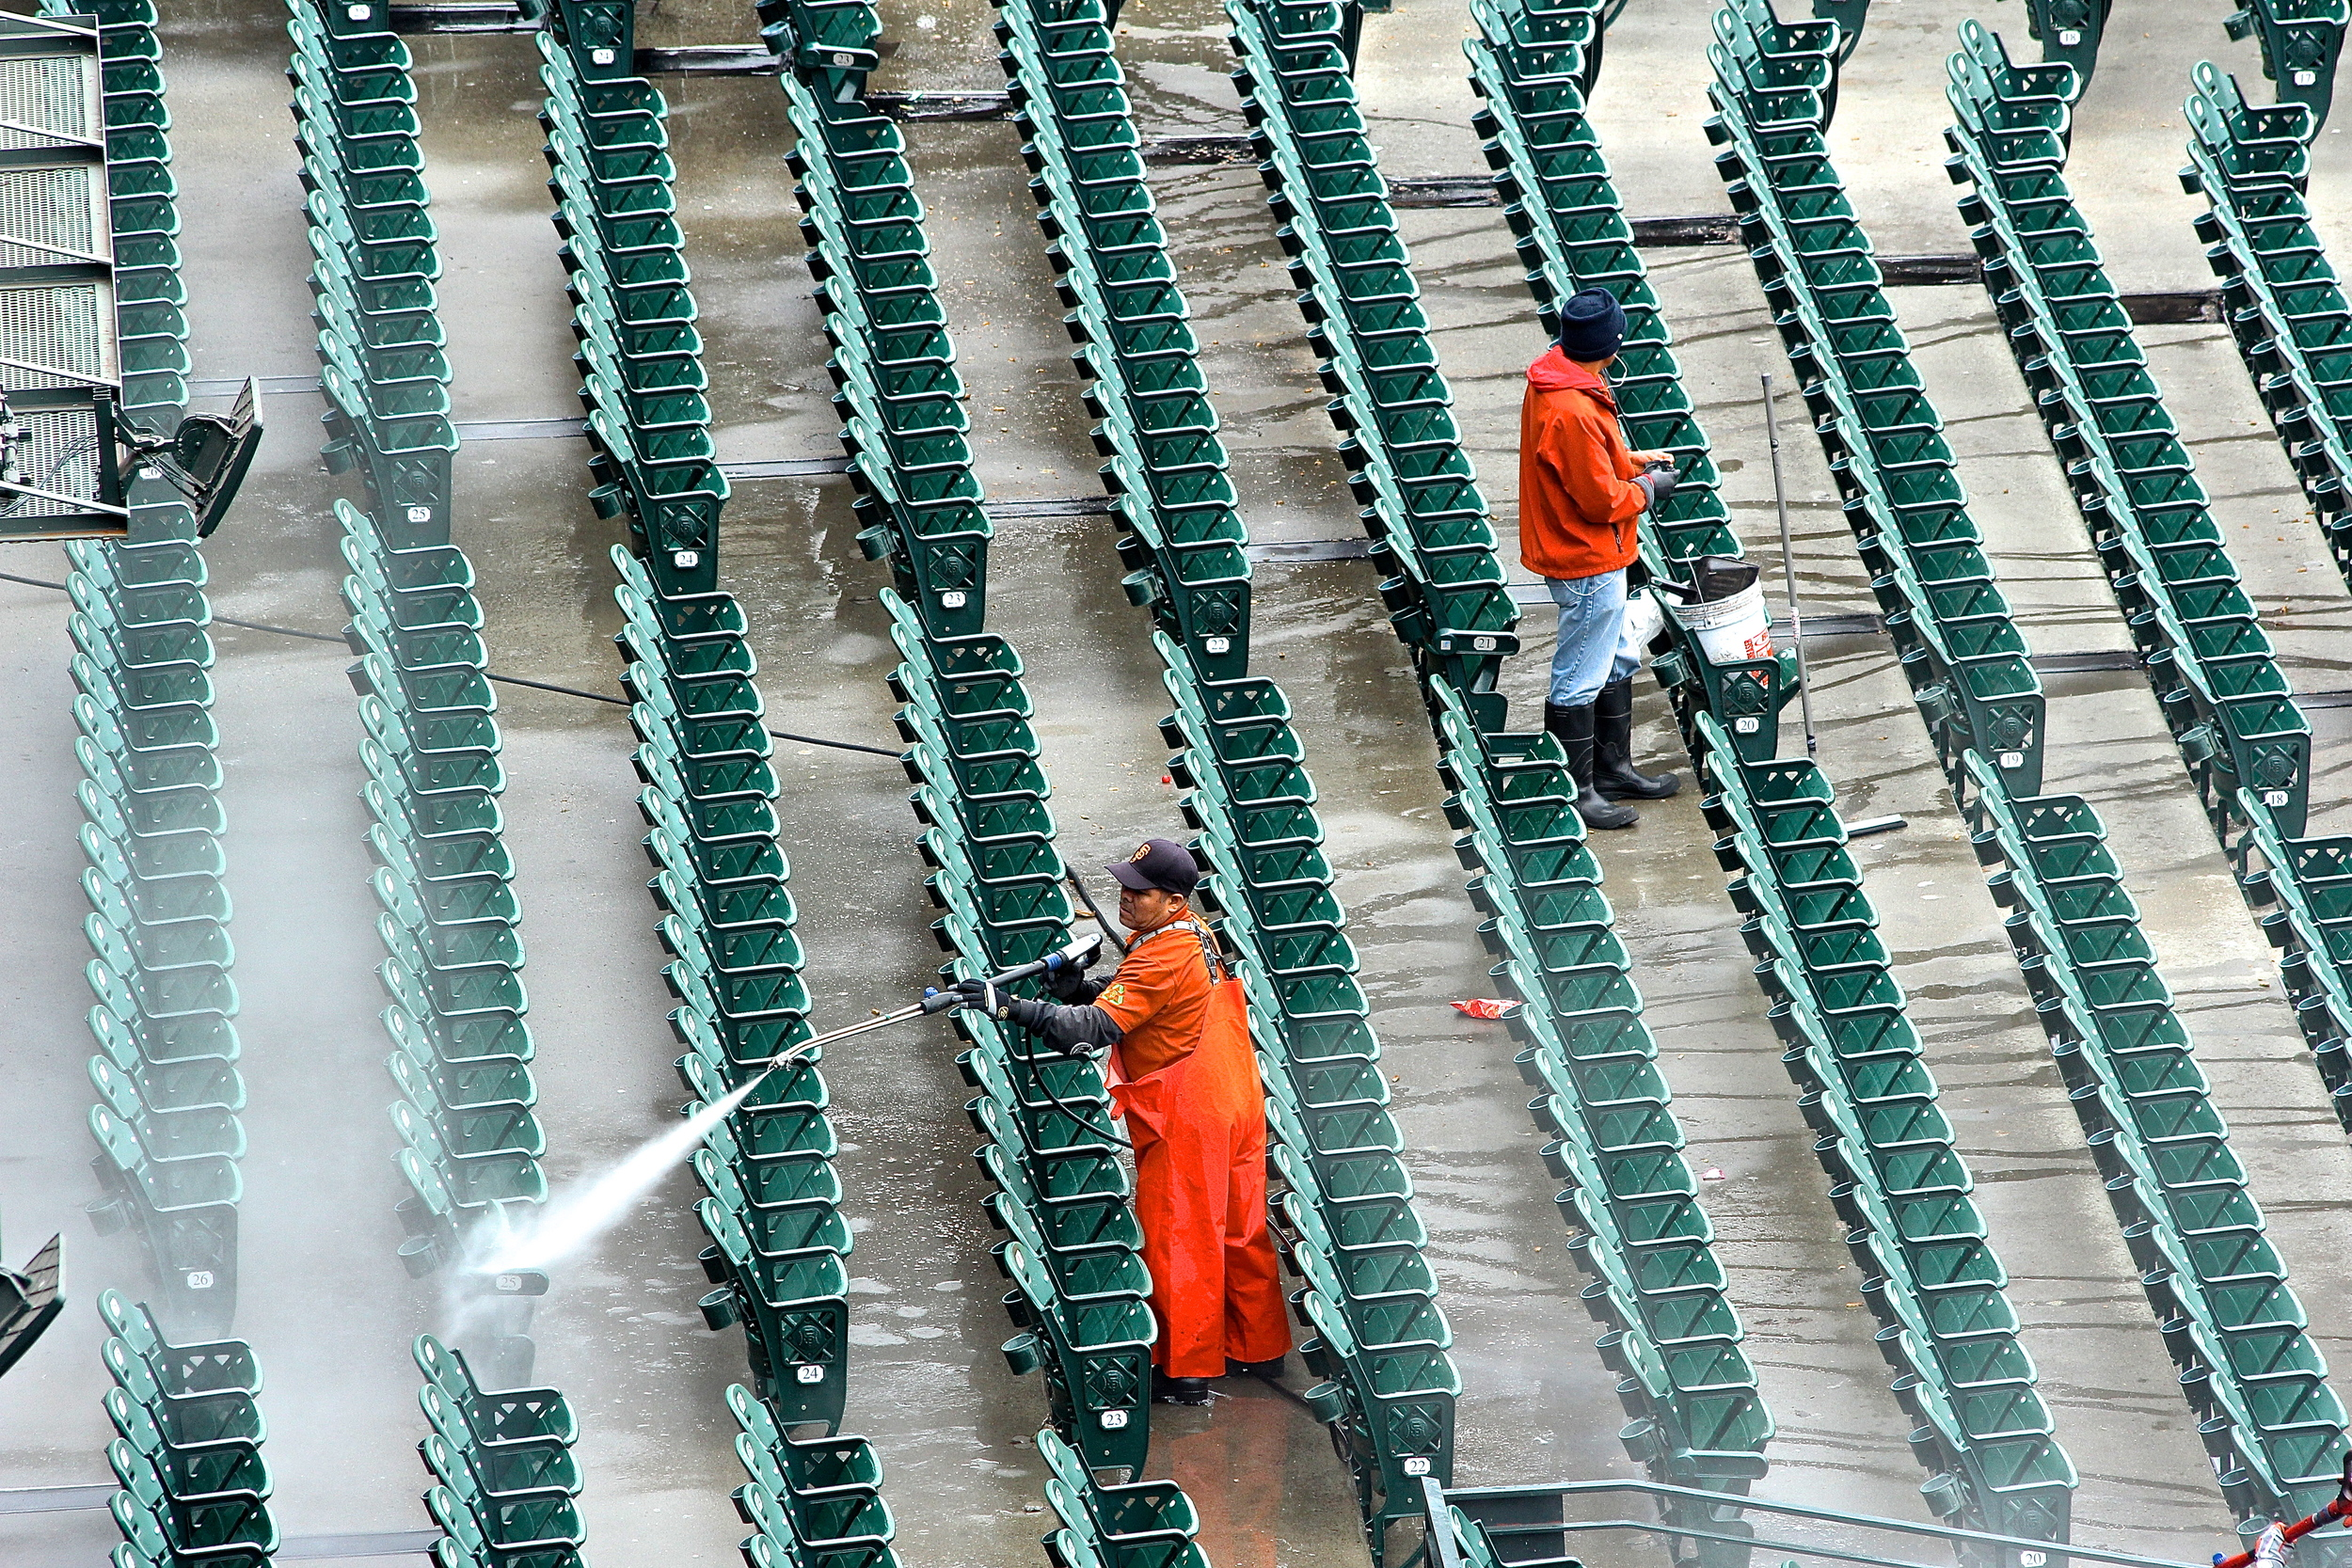 Power washing the stands